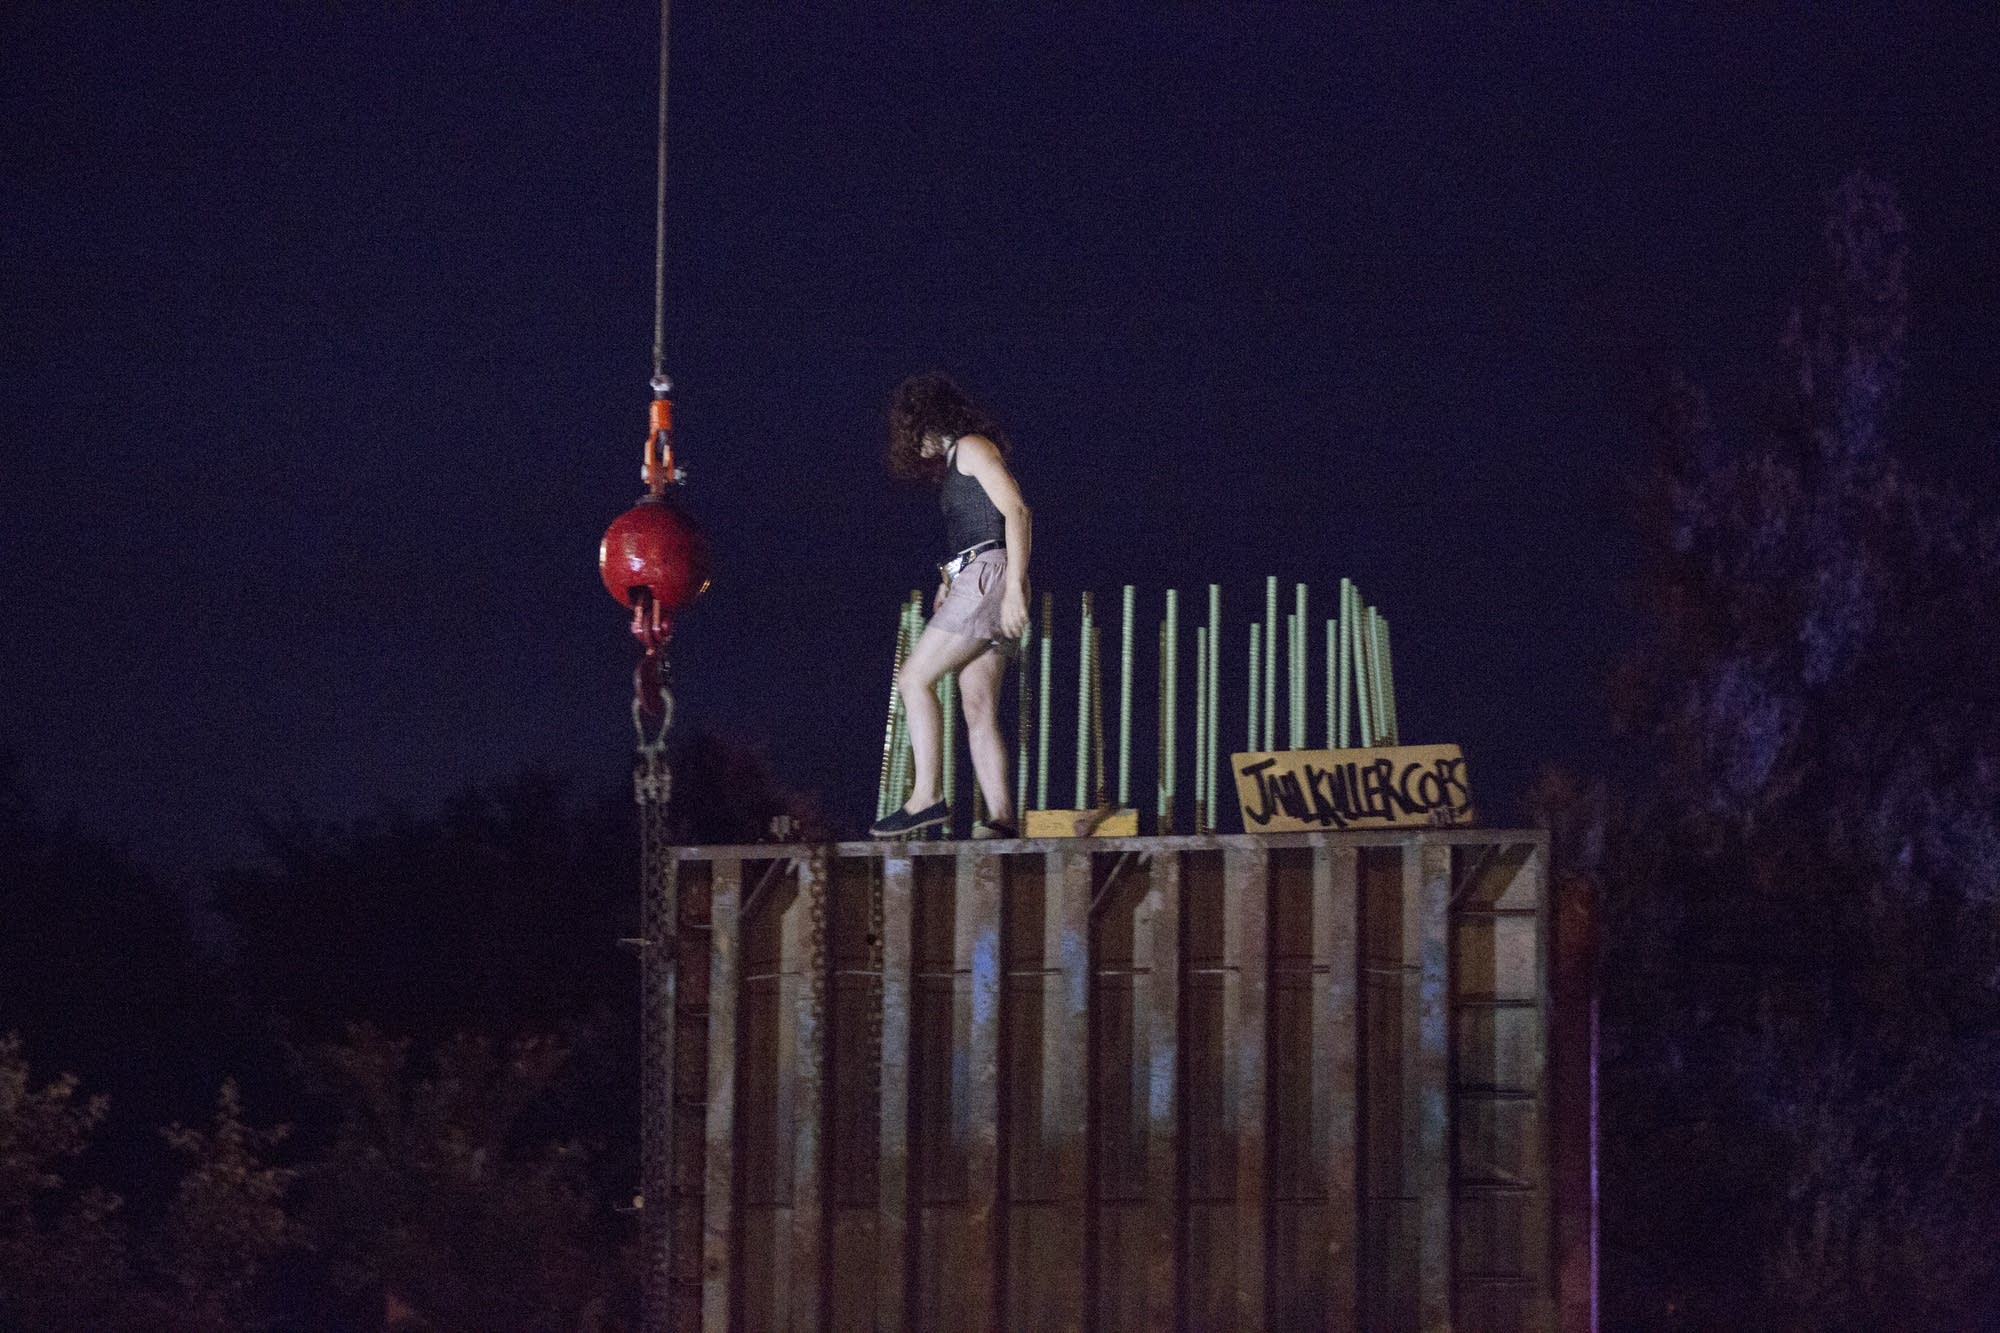 A protester climbs a construction project.